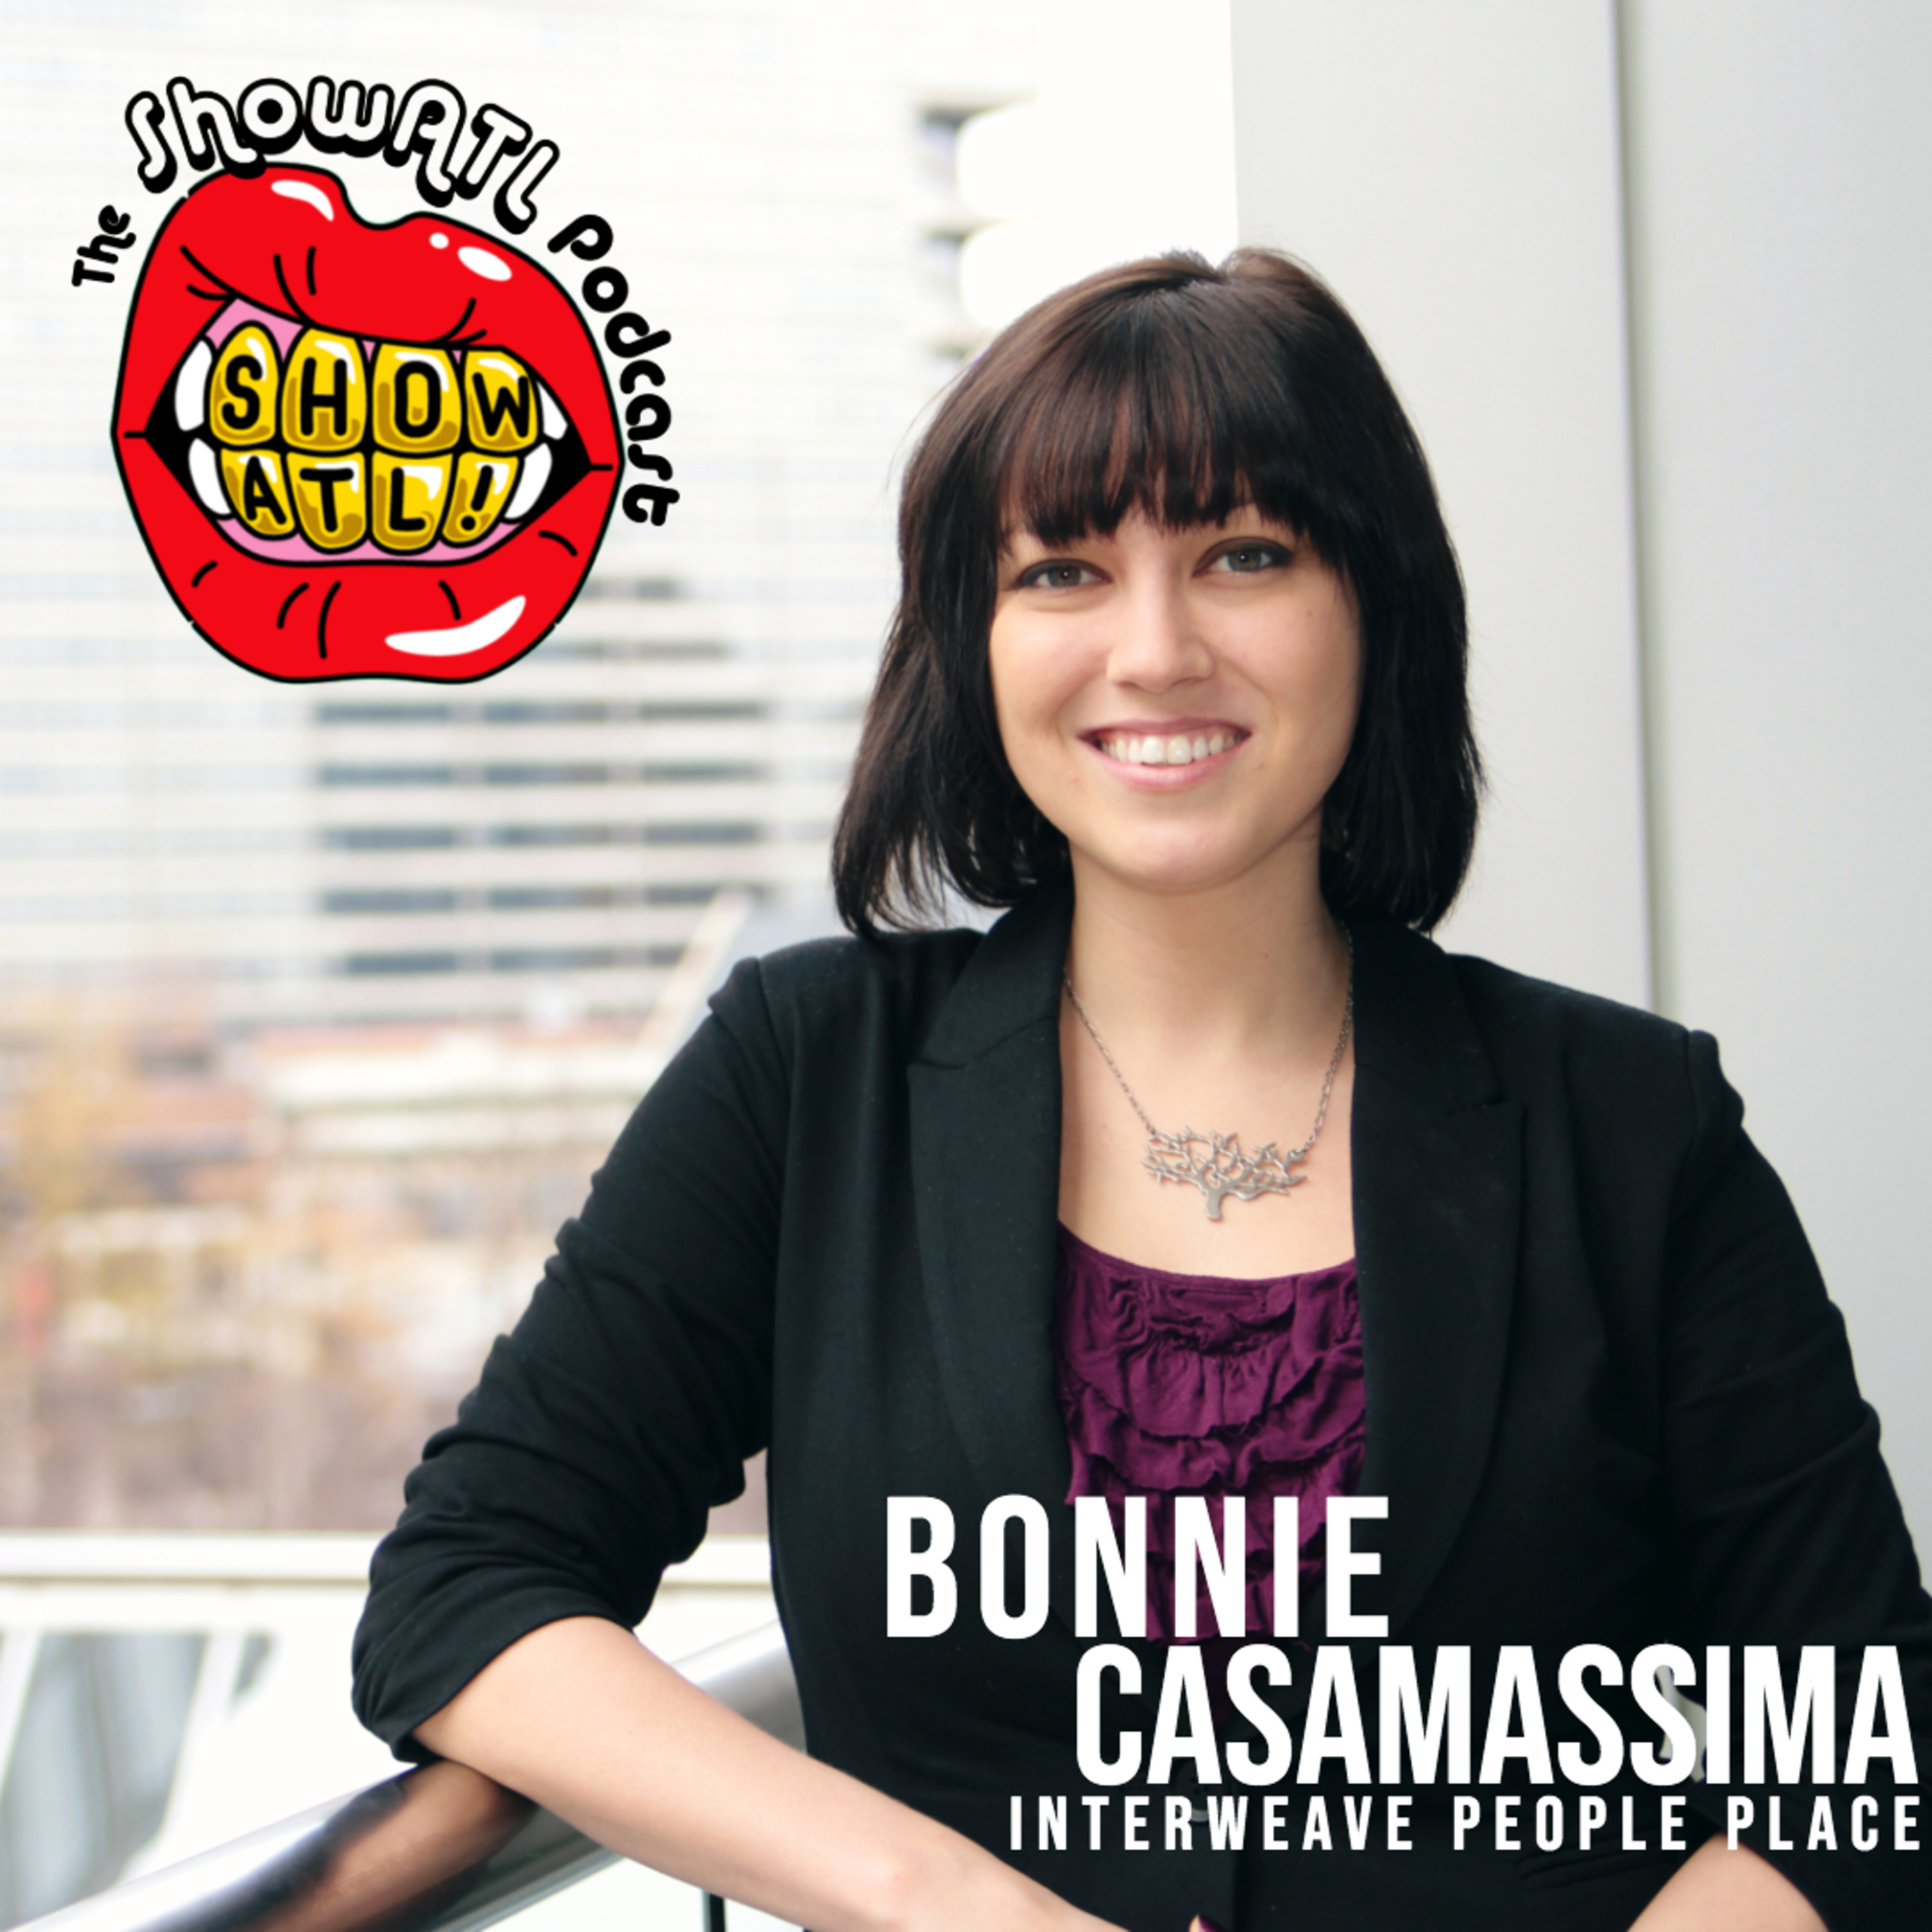 Interior Design and Psychology with Bonnie Casamassima - Episode 29